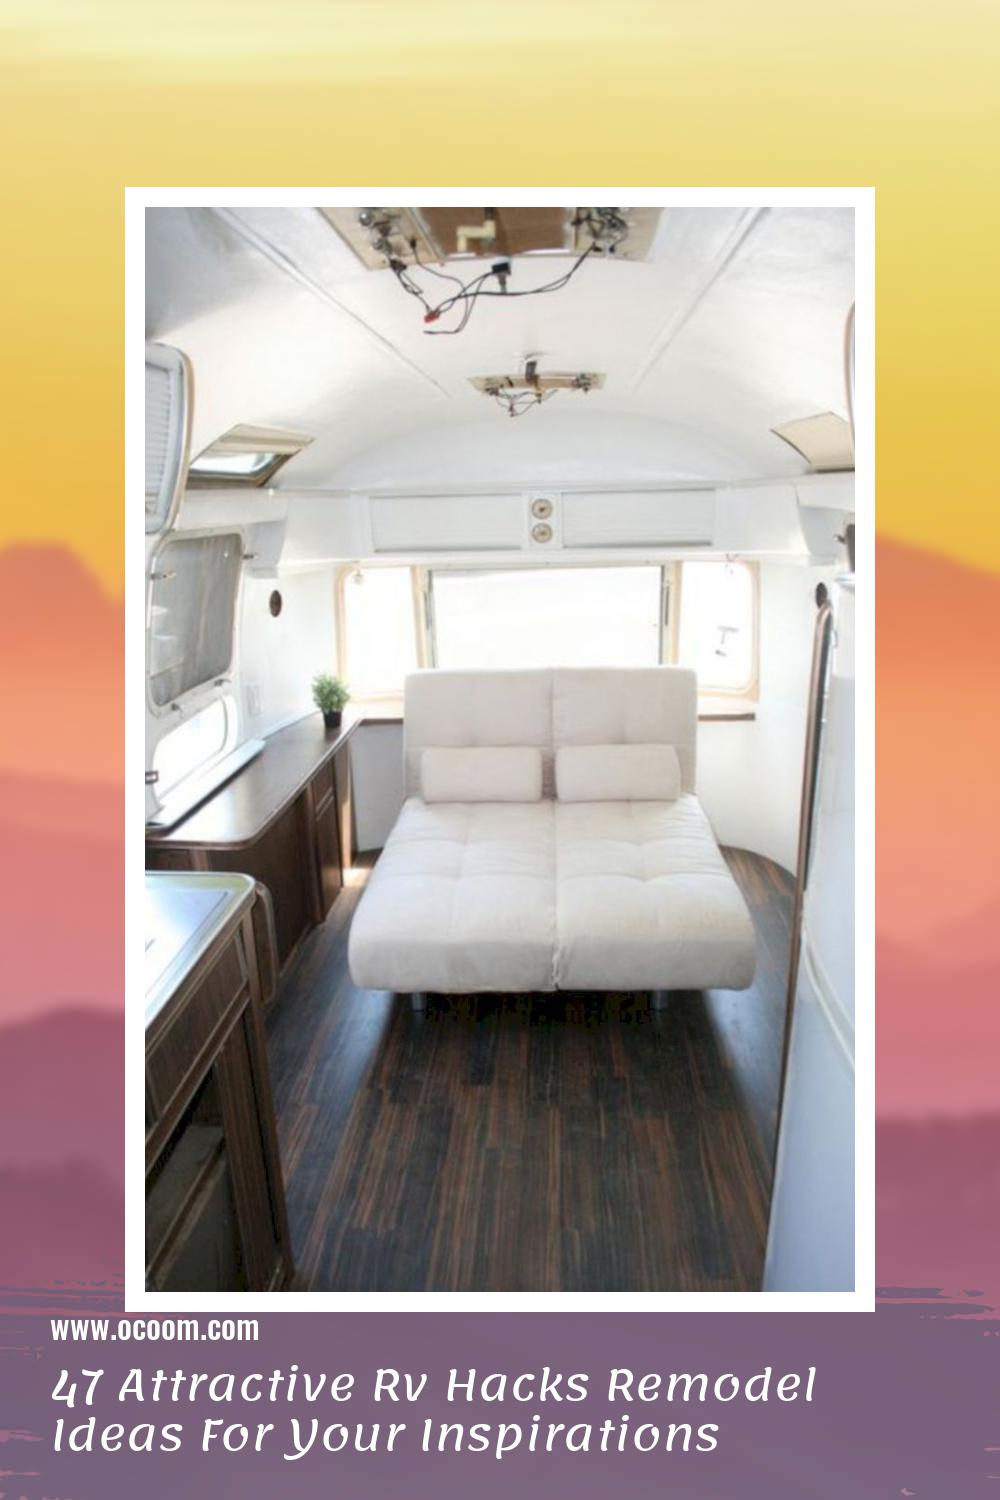 47 Attractive Rv Hacks Remodel Ideas For Your Inspirations 29